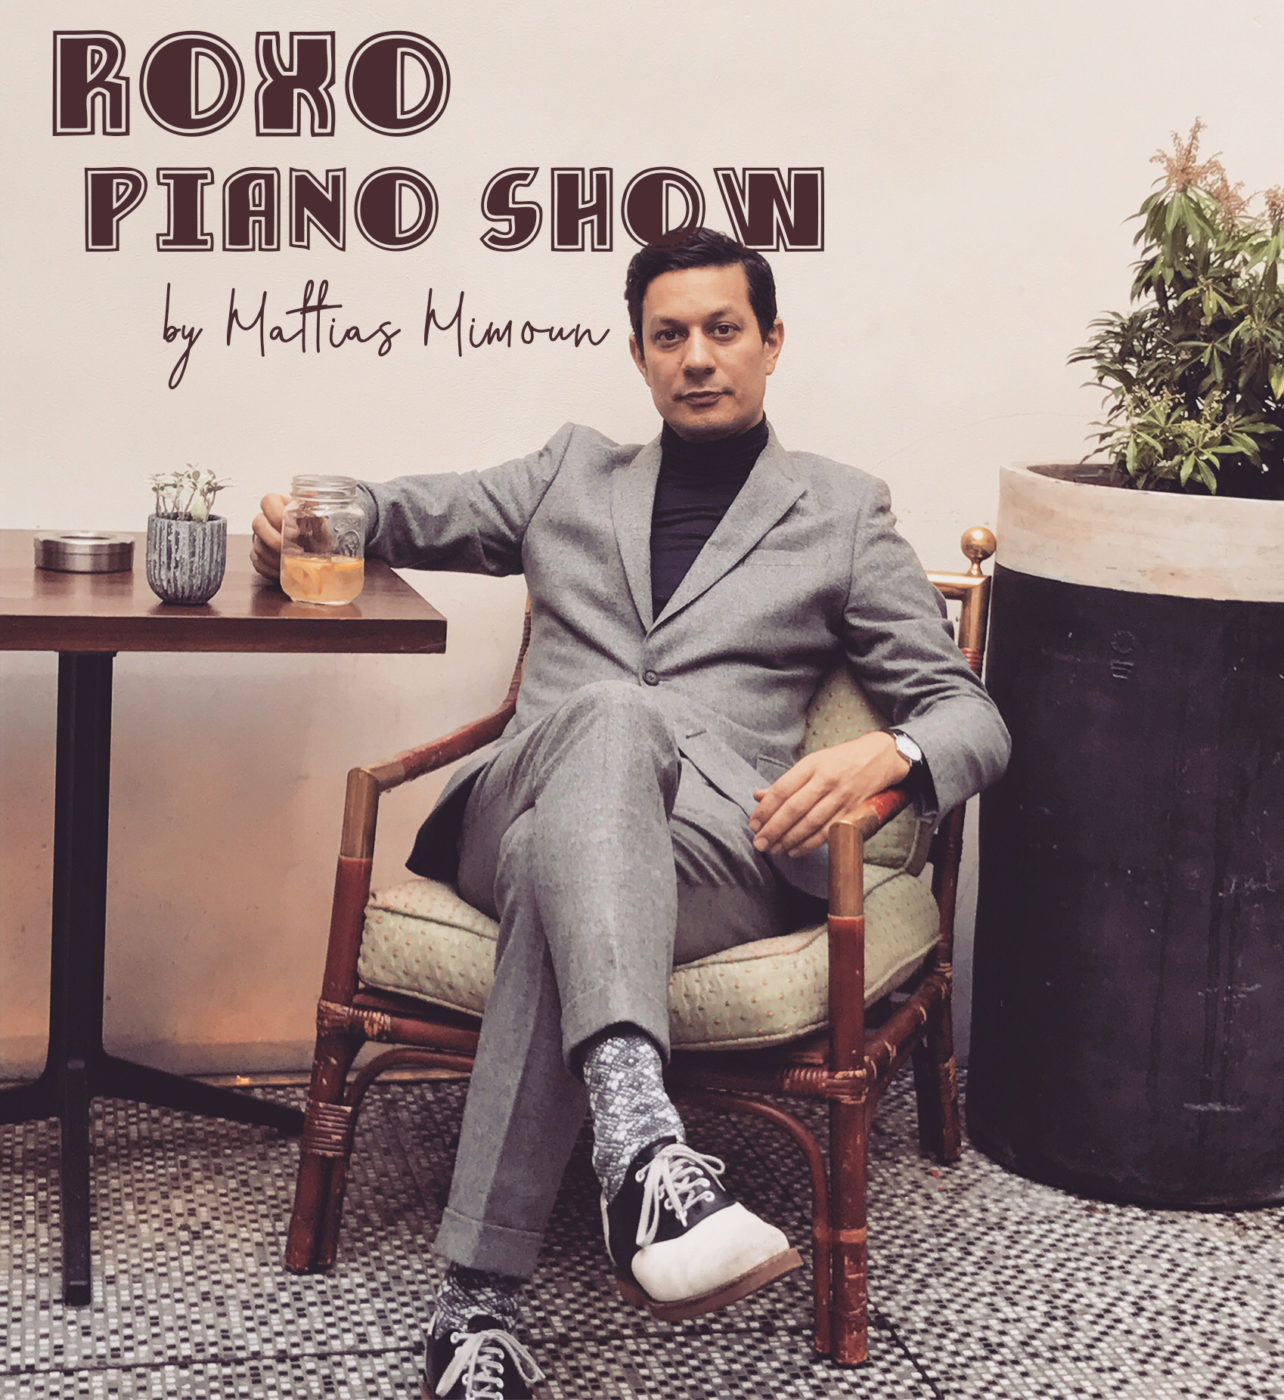 Roxo PIANO SHOW by Mattias Mimoun